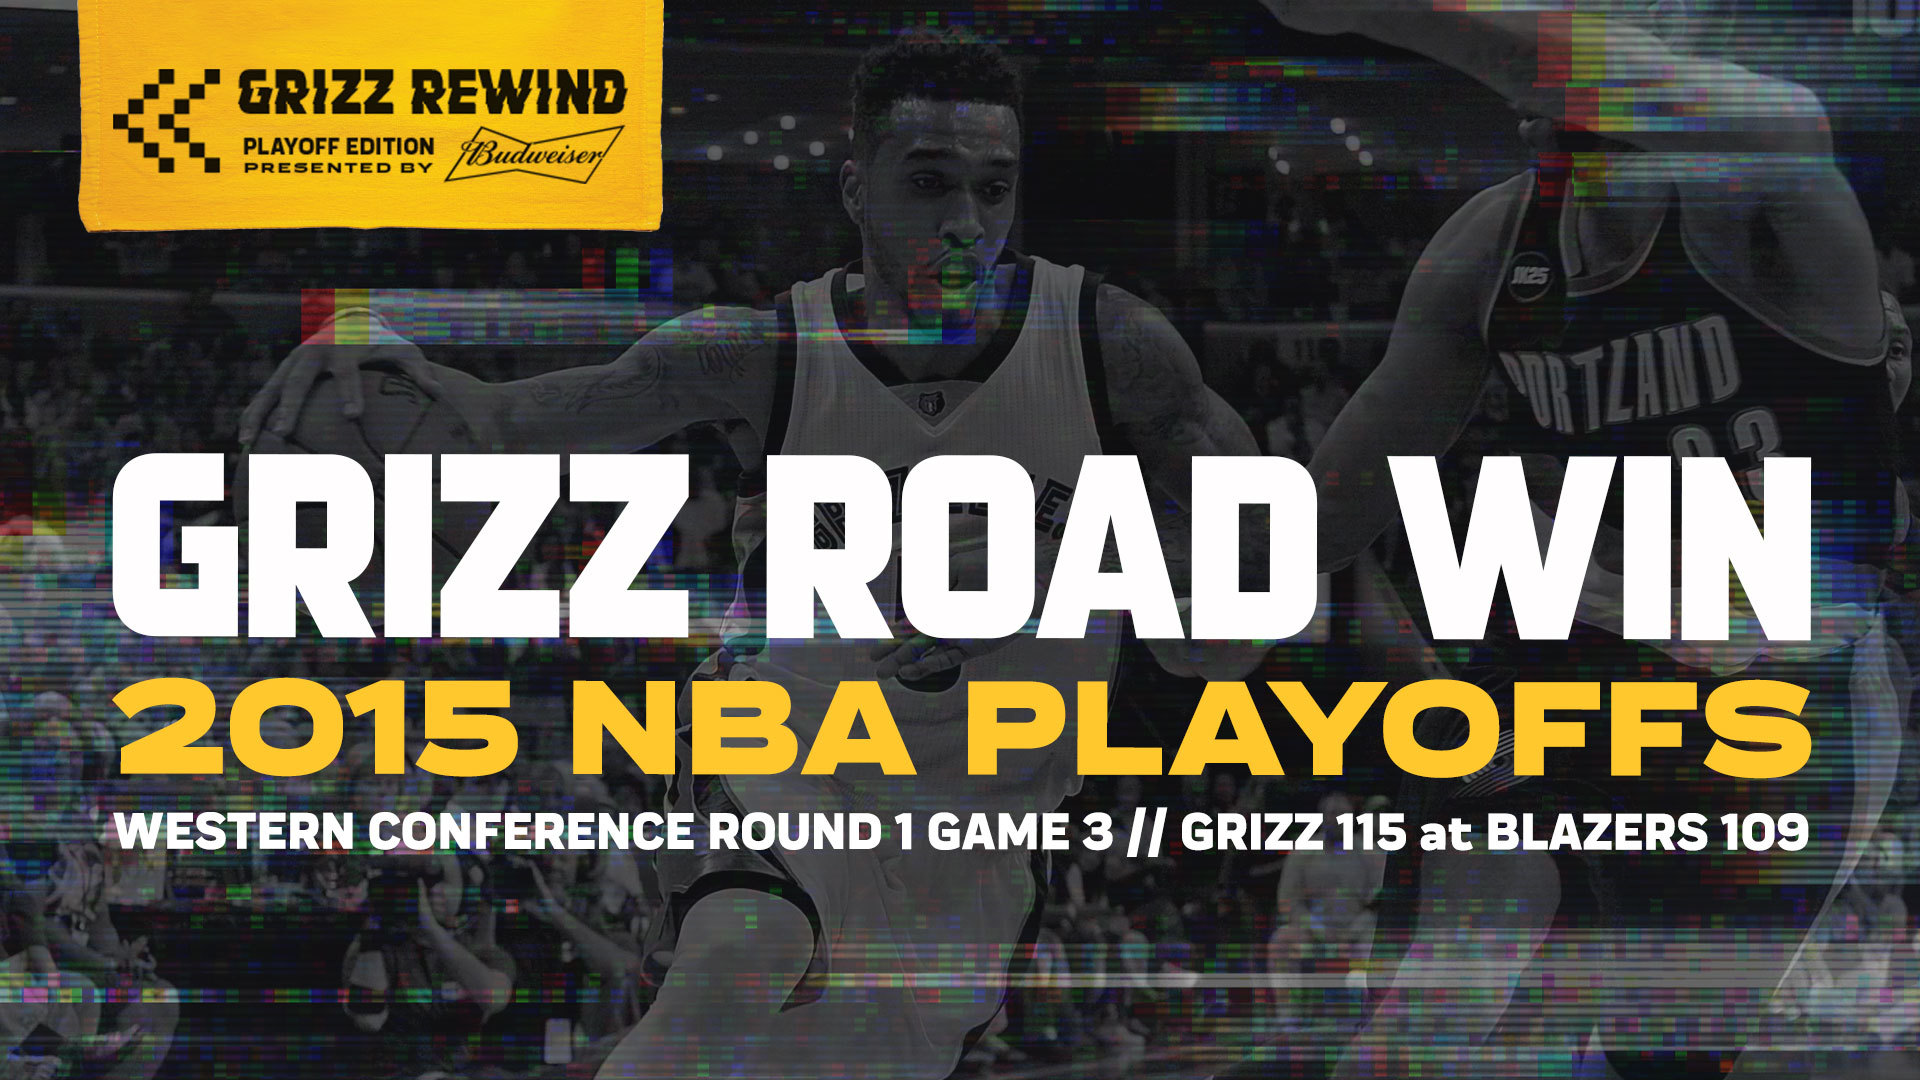 Grizz Road Win | Grizz Rewind: Playoff Edition 4.25.15